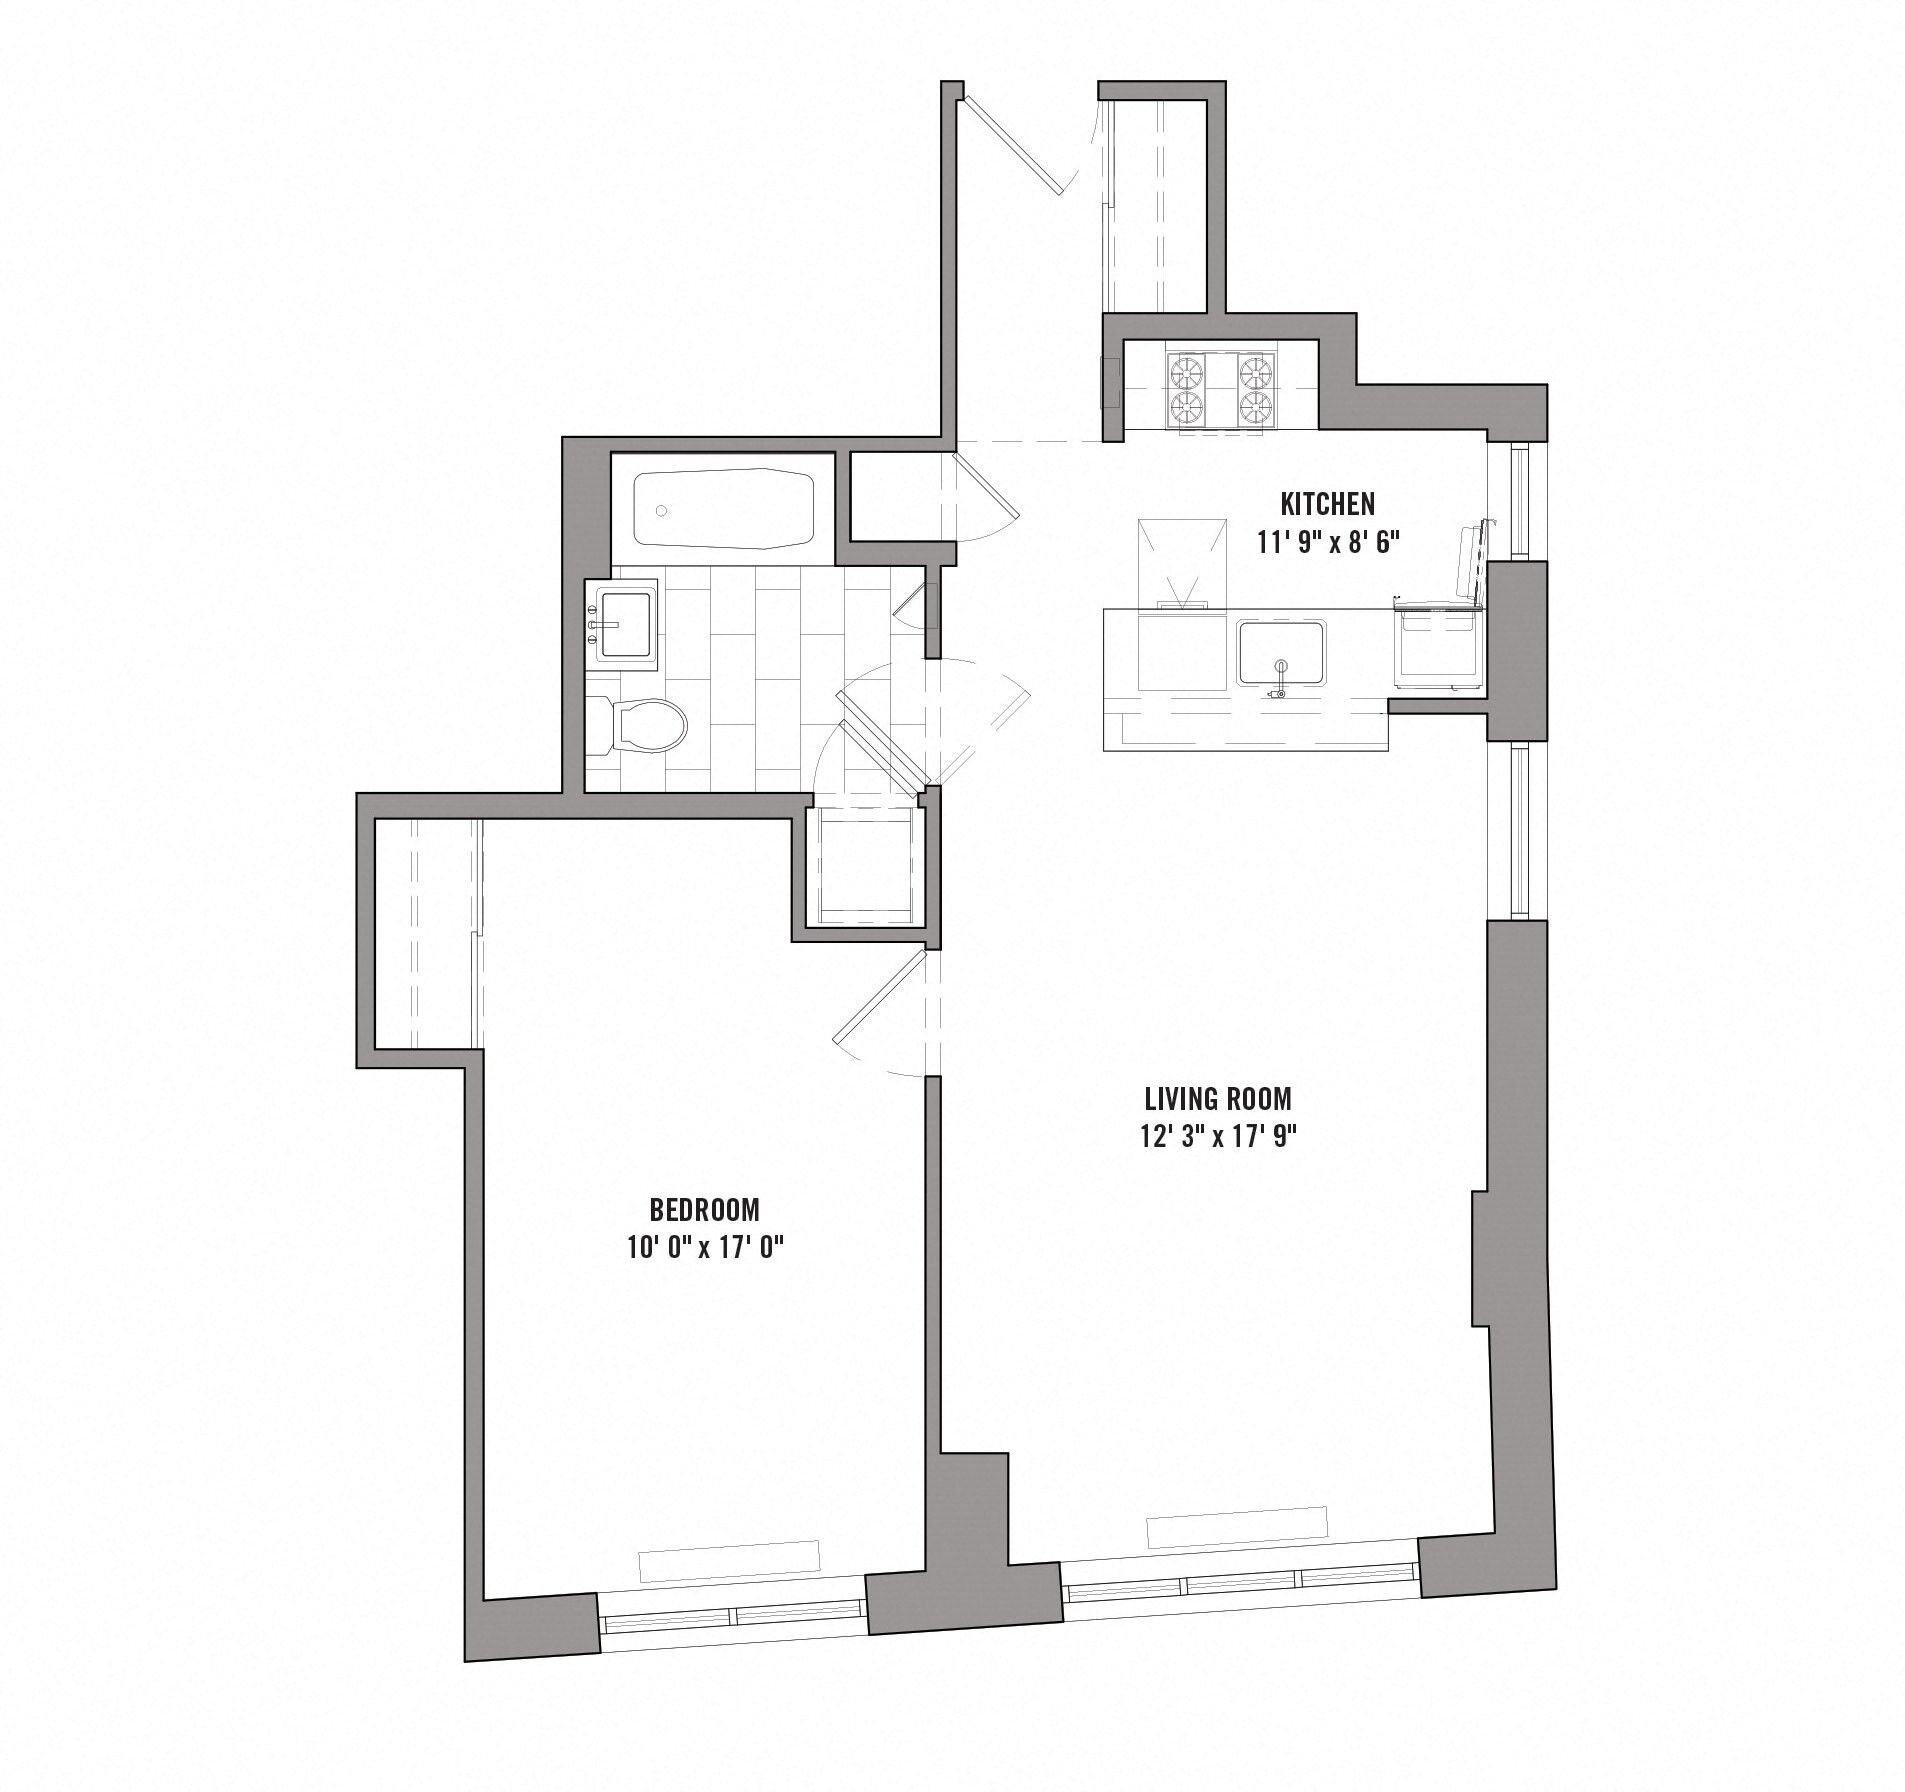 Floor plan diagram for unit D 9-15. 1 bedroom, 1 bathroom, kitchen, and living room.